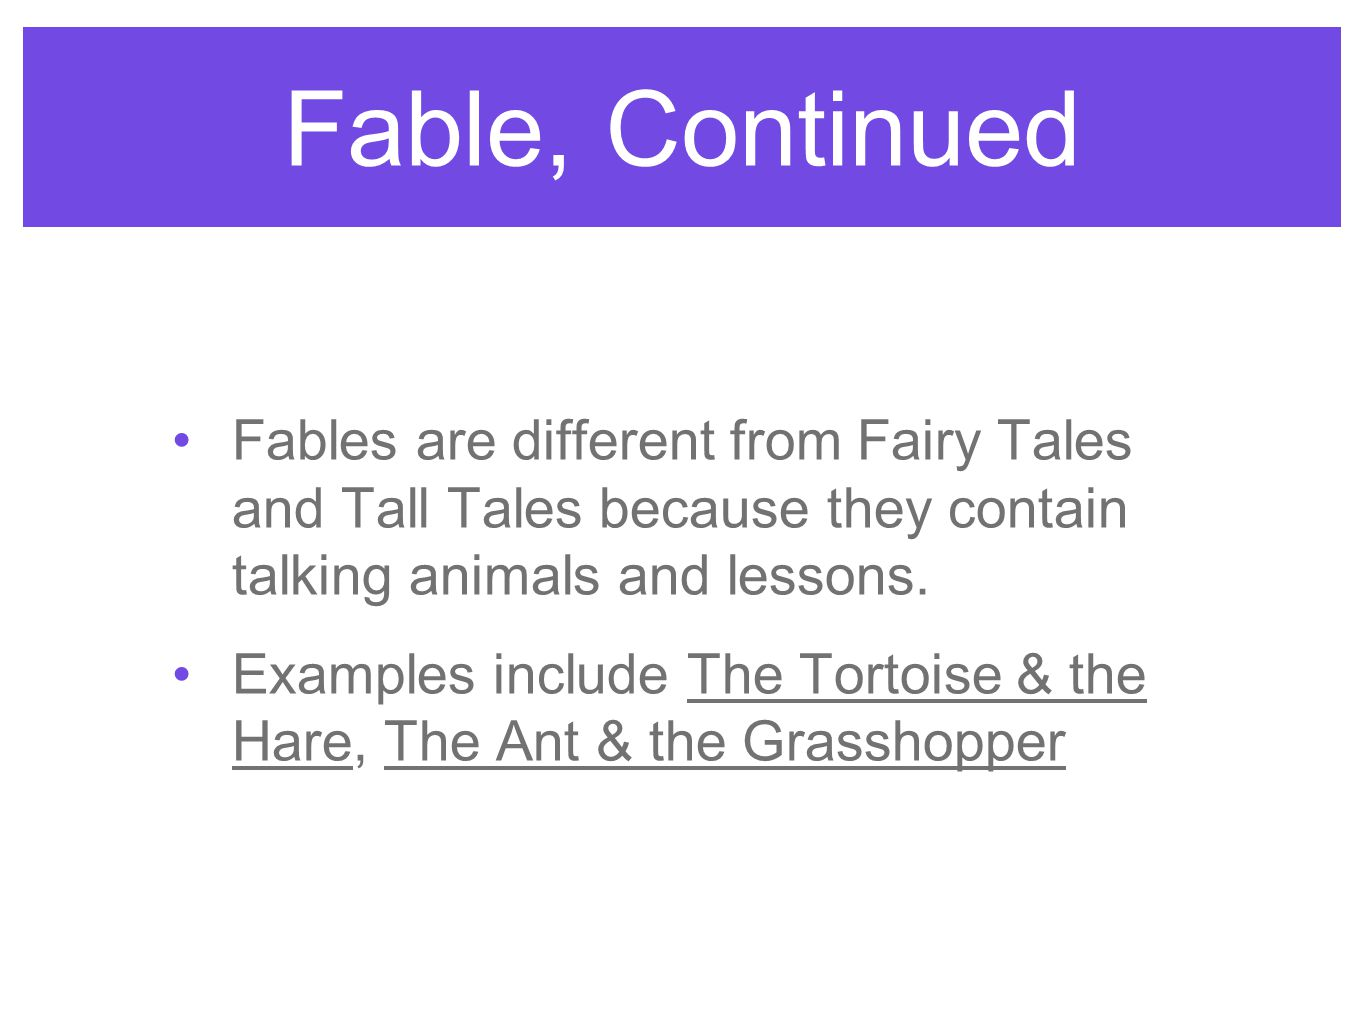 Fable, Continued Fables are different from Fairy Tales and Tall Tales because they contain talking animals and lessons.